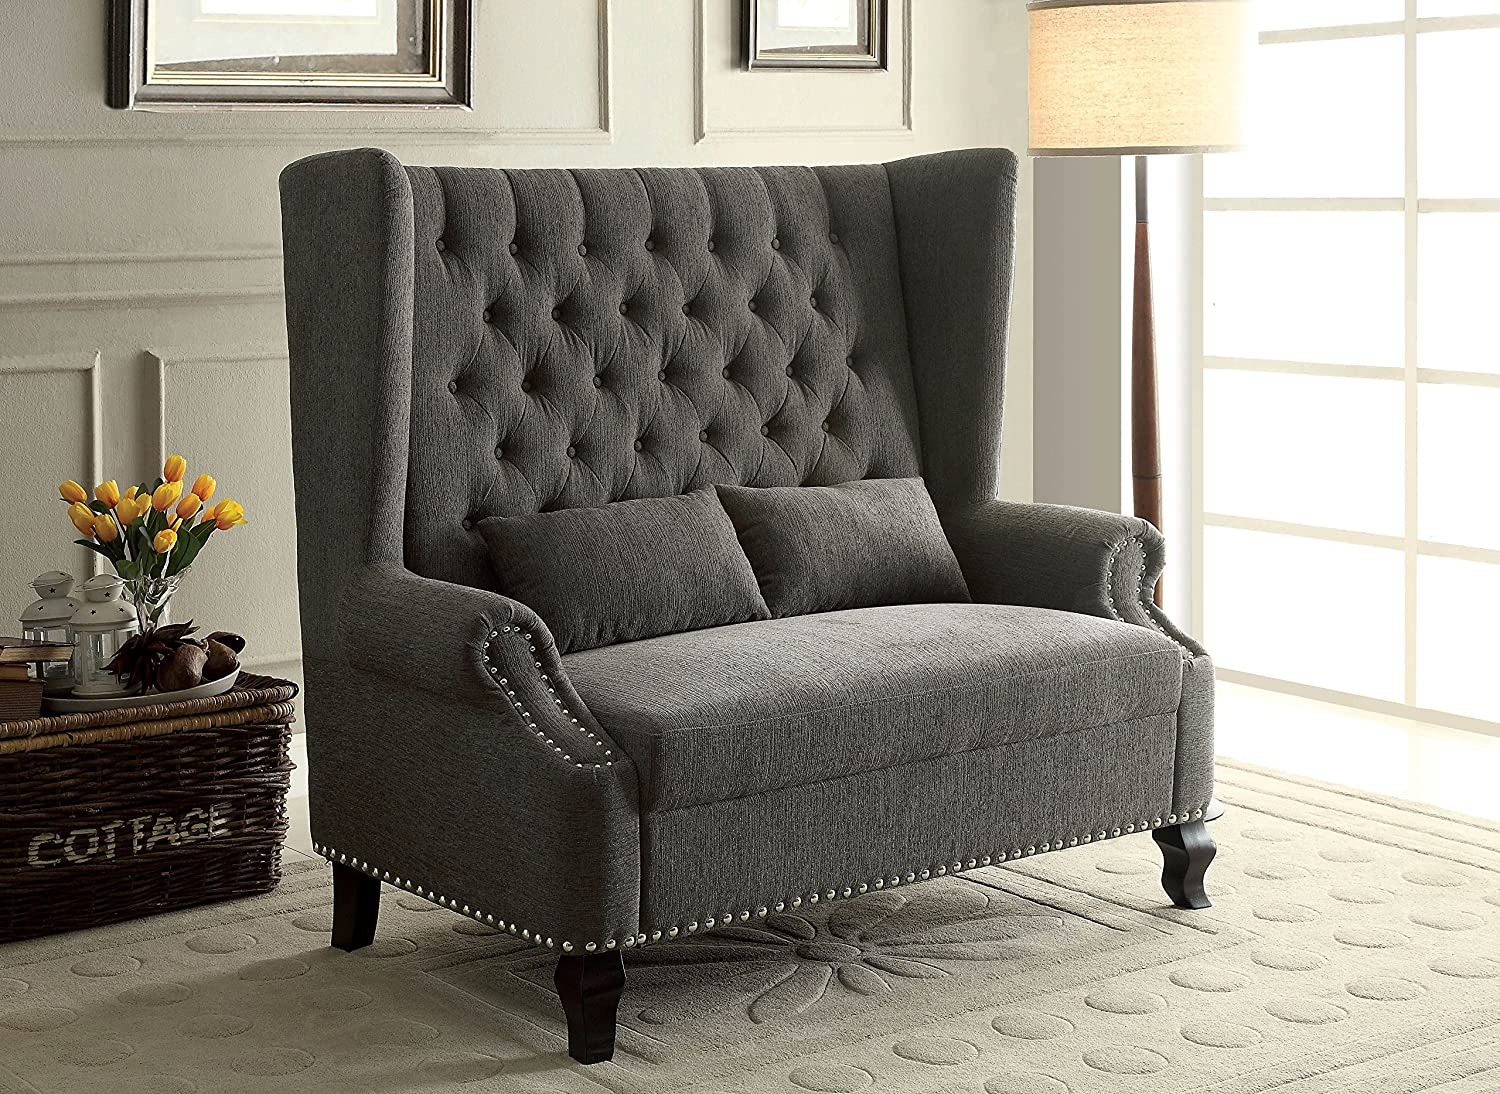 size sets tall wood and john couches traditional sofa inspiring bed lewis light plastic cotton costly arms flared for country average loveseats slipcovers faux back awe loveseat dark red reclining vinyl split black cushion leather linen stone breathtaking